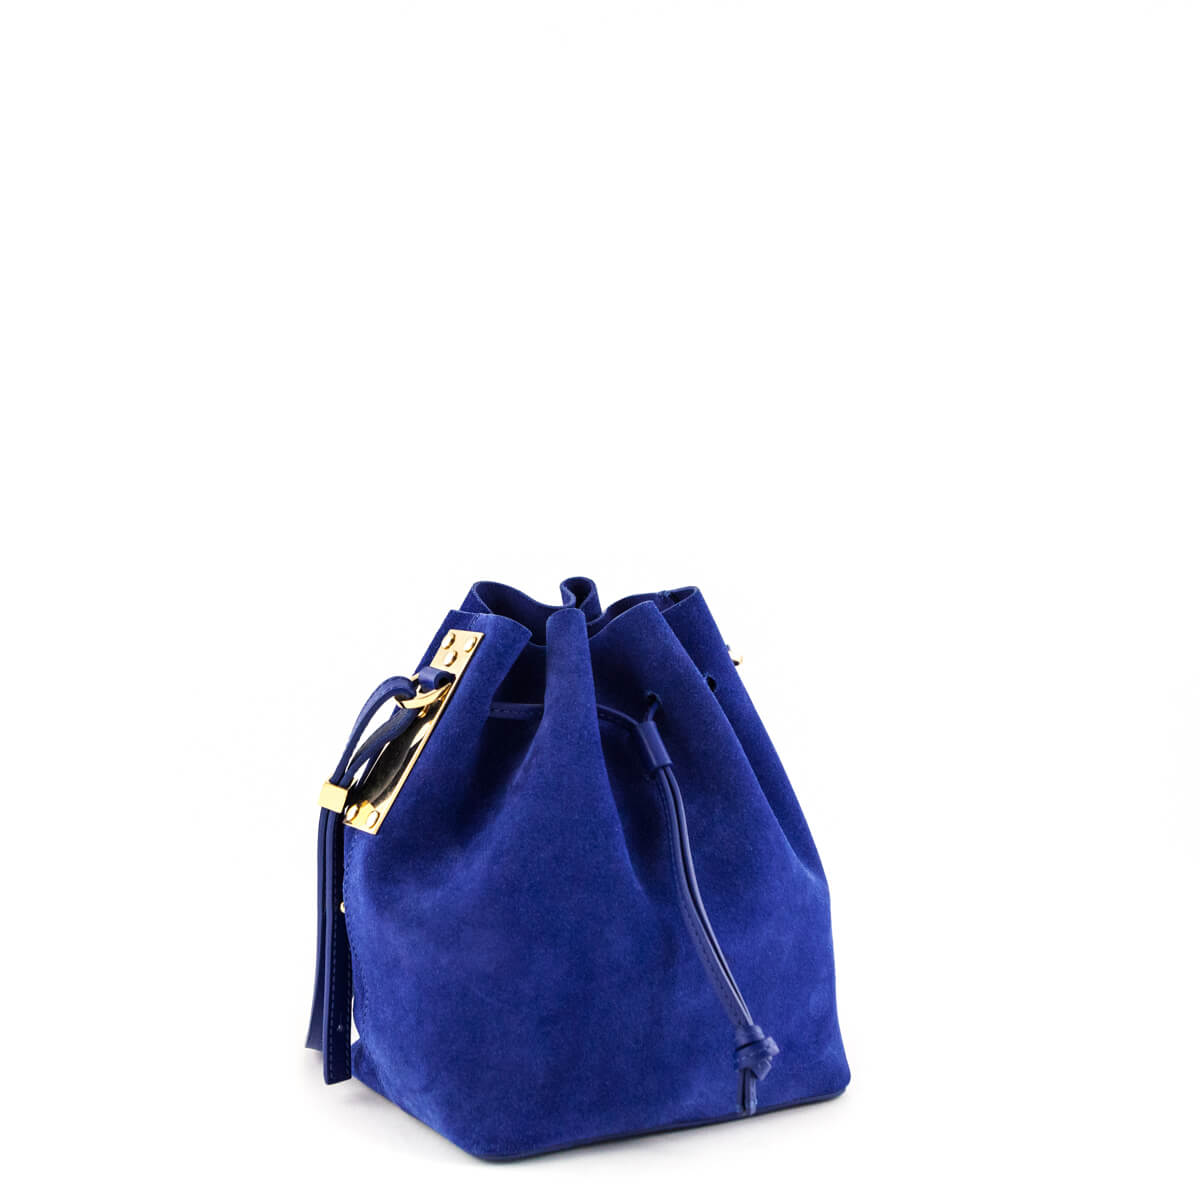 d42b373190 ... Sophie Hulme Klein Blue Suede Nelson Bucket Bag - LOVE that BAG -  Preowned Authentic Designer ...